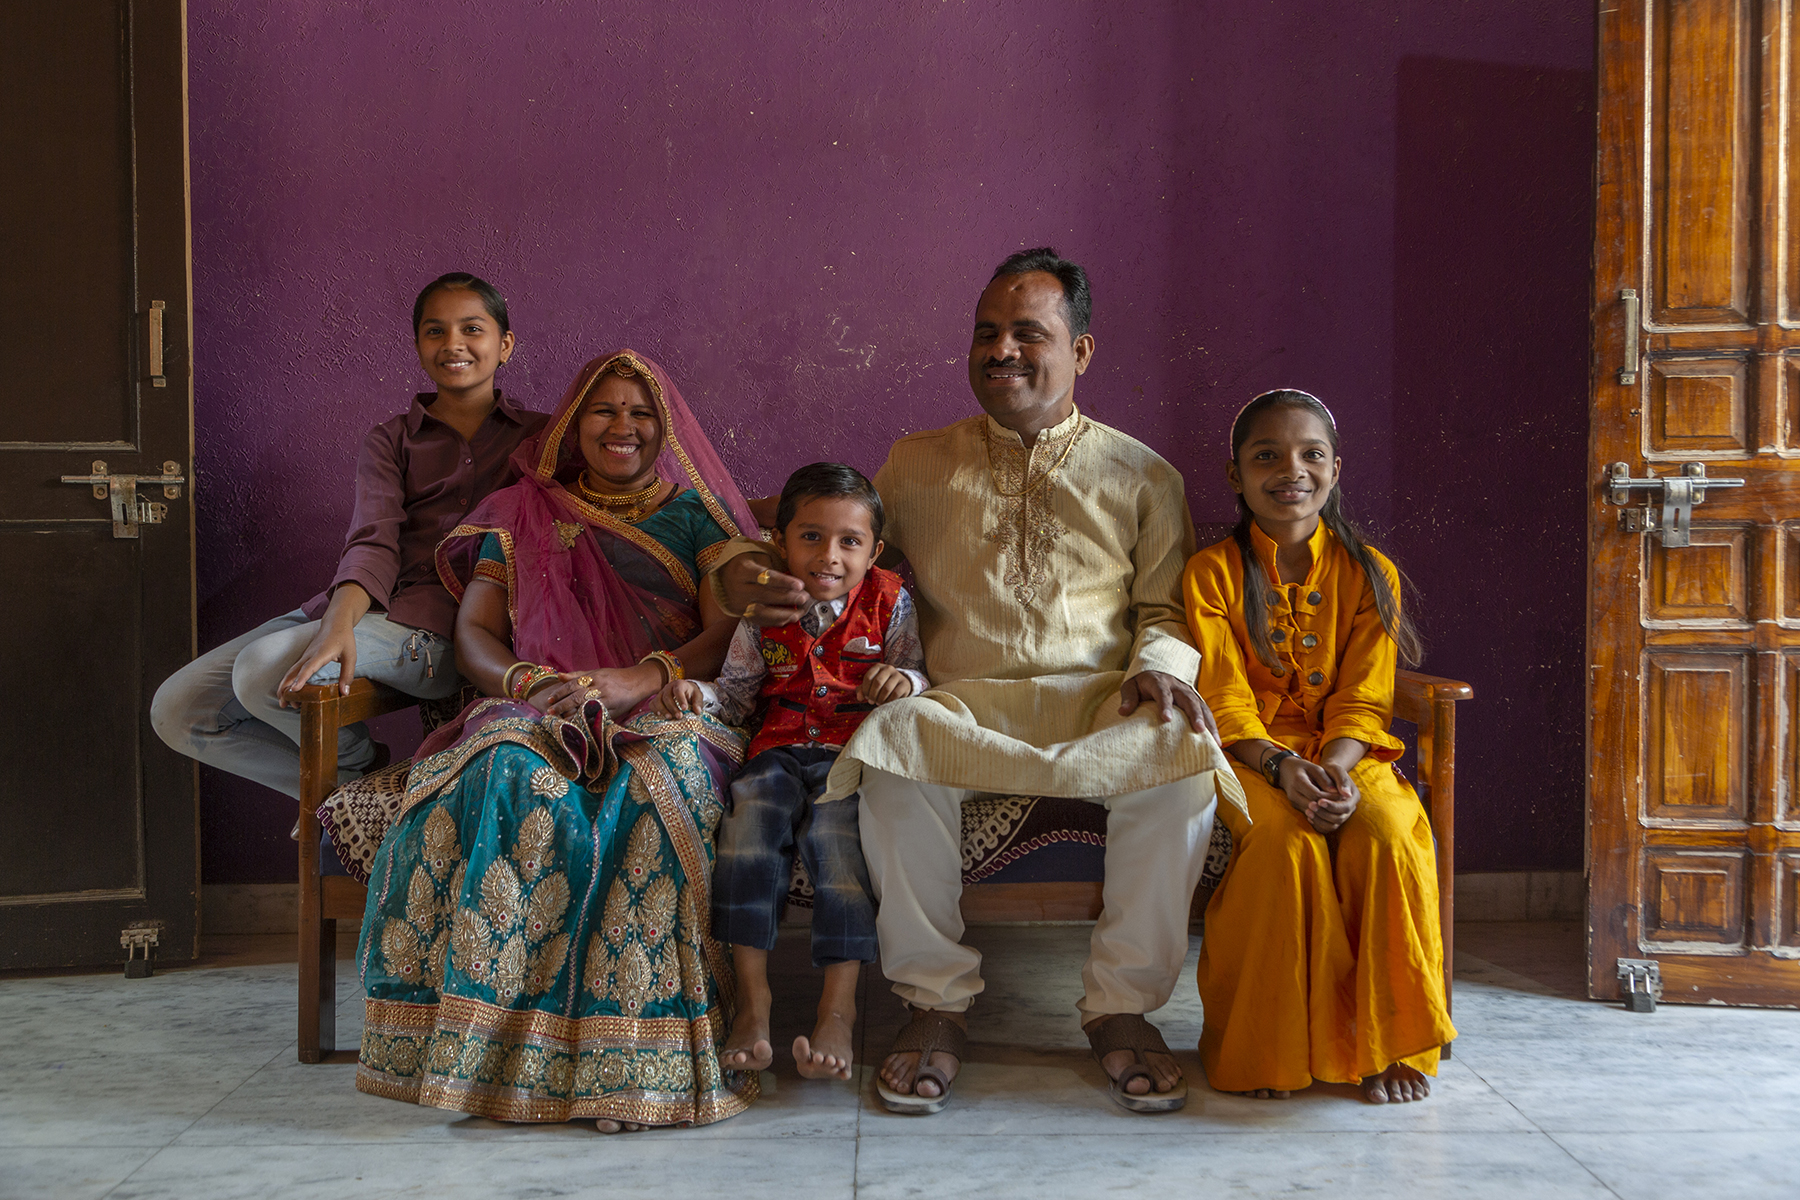 Prakash Chand and his family pose on a sofa, smiling broadly. From left to right, daughter Ruchika (12), wife Kavita (37), son Piyush (5), Prakash, and daughter Nidhi (10). Ruchika wears a chocolate-brown full-sleeved shirt and light blue jeans. Kavita wears a dark green traditional lehenga-choli with zari embroidery paired with a zari-edged orange dupatta draped over her head. Piyush wears calf-length shorts and shirt with orange vest. Prakash wears a beige kurta with brown embroidery at the neck and white pyjamas. Nidhi is in a plain orange full-sleeved top and matching lehenga.